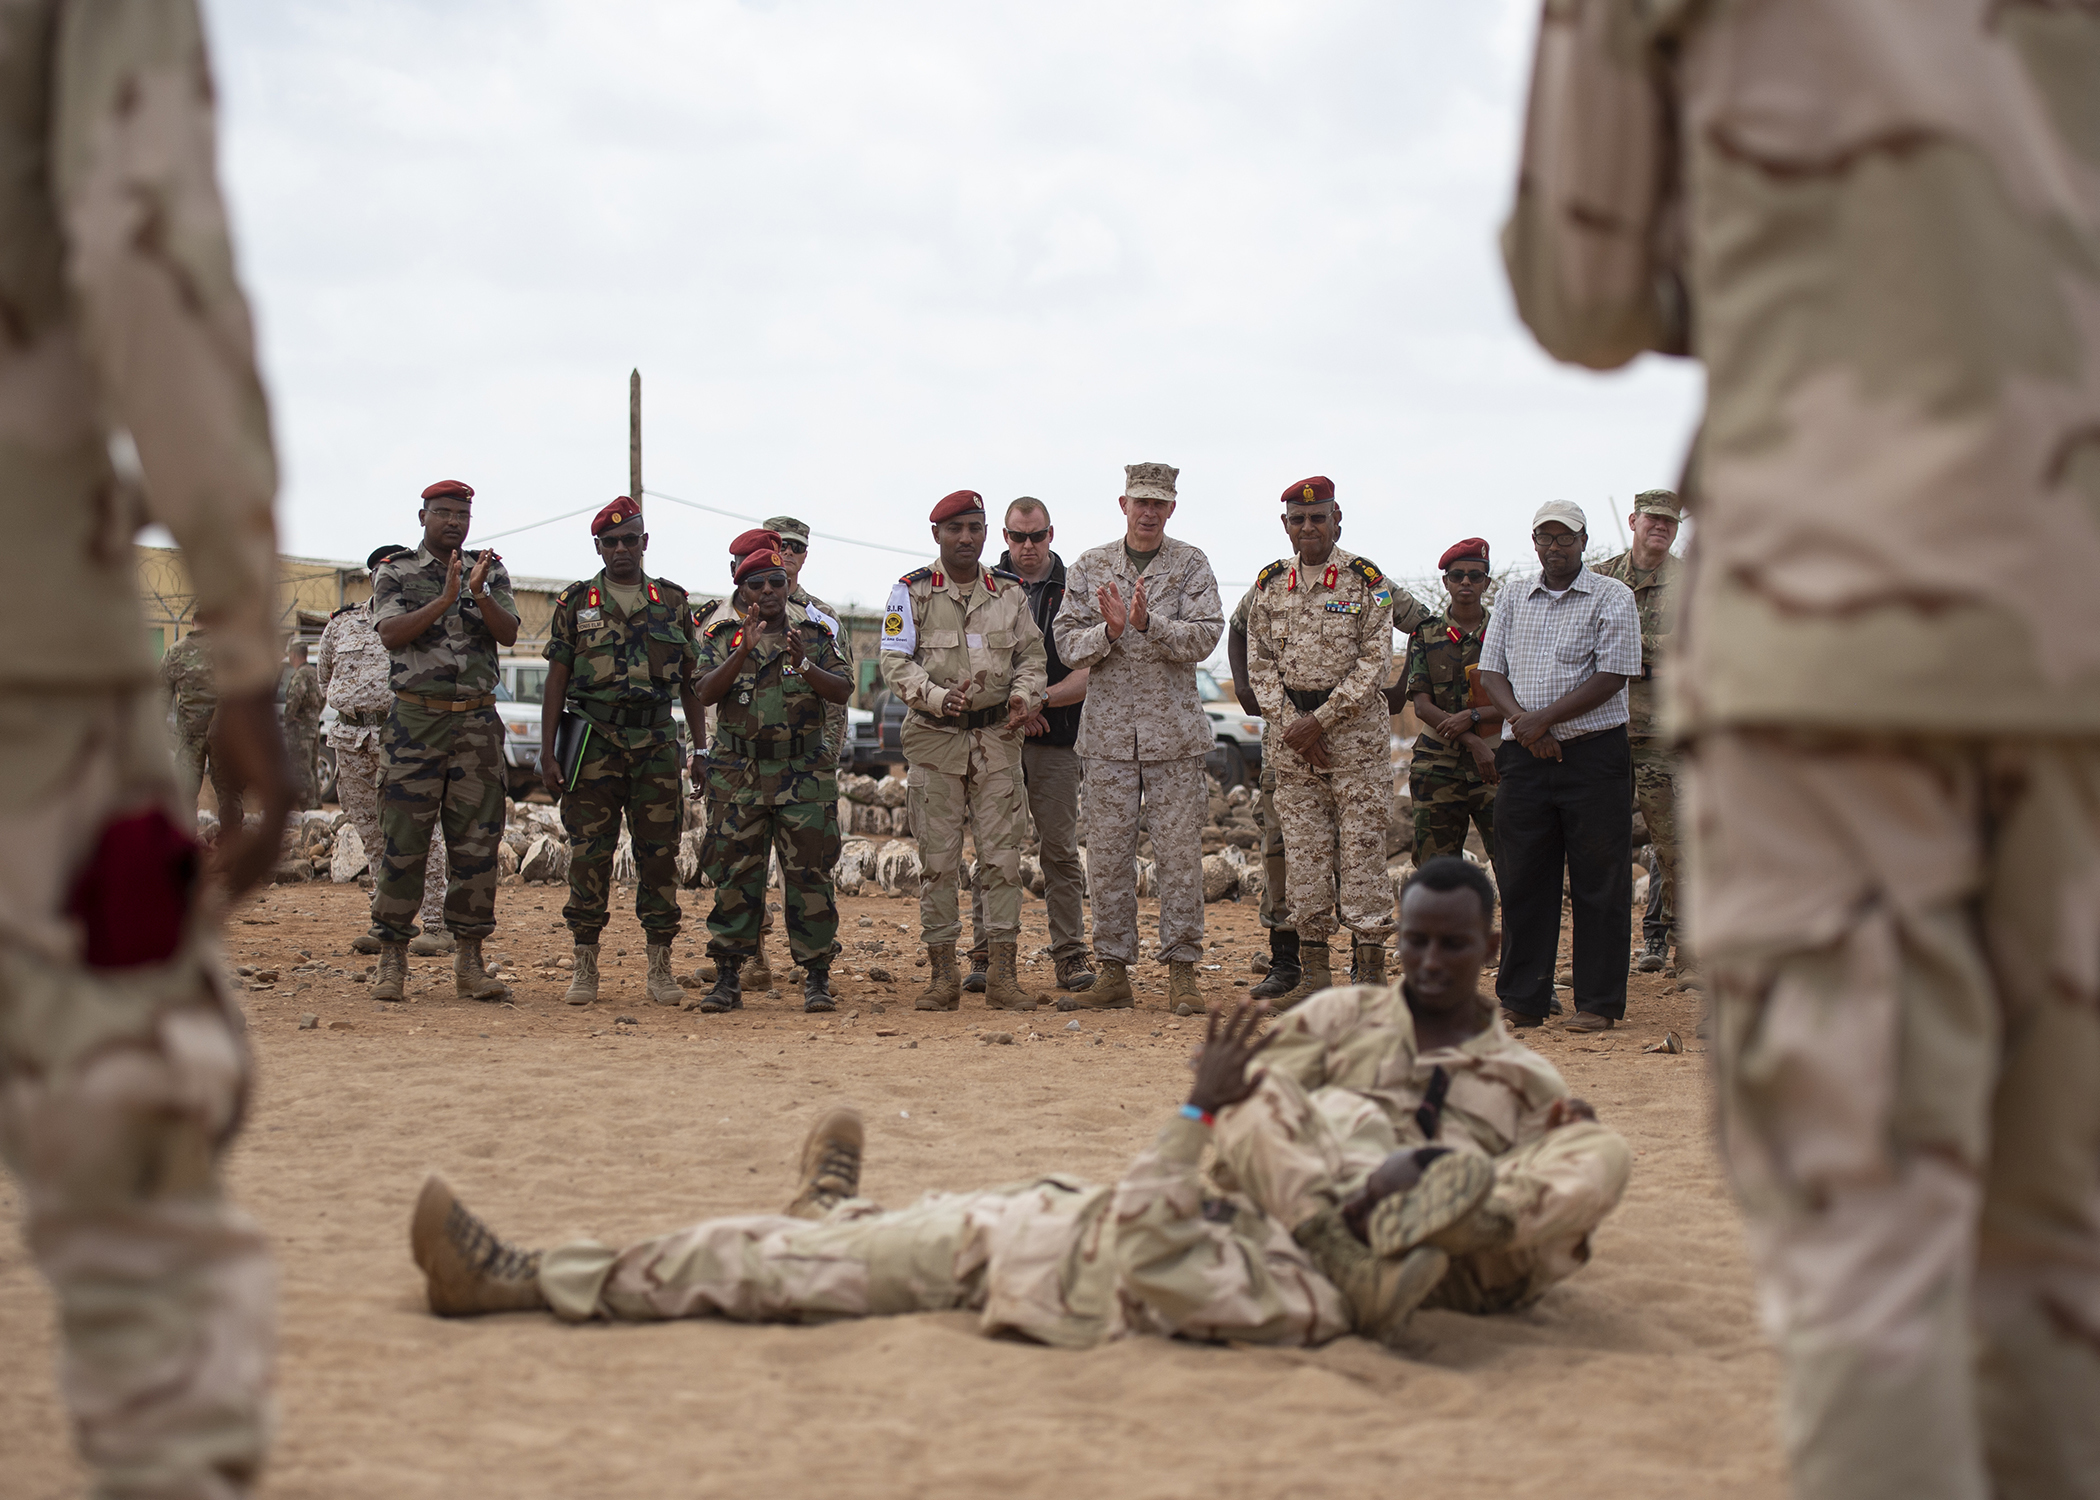 U.S. Marine Corps Gen. Thomas D. Waldhauser, commander of U.S. Africa Command, claps after a demonstration by soldiers from the Djiboutian army's elite military force, the Rapid Intervention Battalion, during a visit with senior Djiboutian officials, including Chief of General Staff of the Djibouti Armed Forces Zakaria Cheik Ibrahim, at a training base in Djibouti, March 21, 2019. Waldhauser visited in order to discuss the growth and development of Djiboutian security forces. (U.S. Air Force photo by Tech. Sgt. Shawn Nickel)